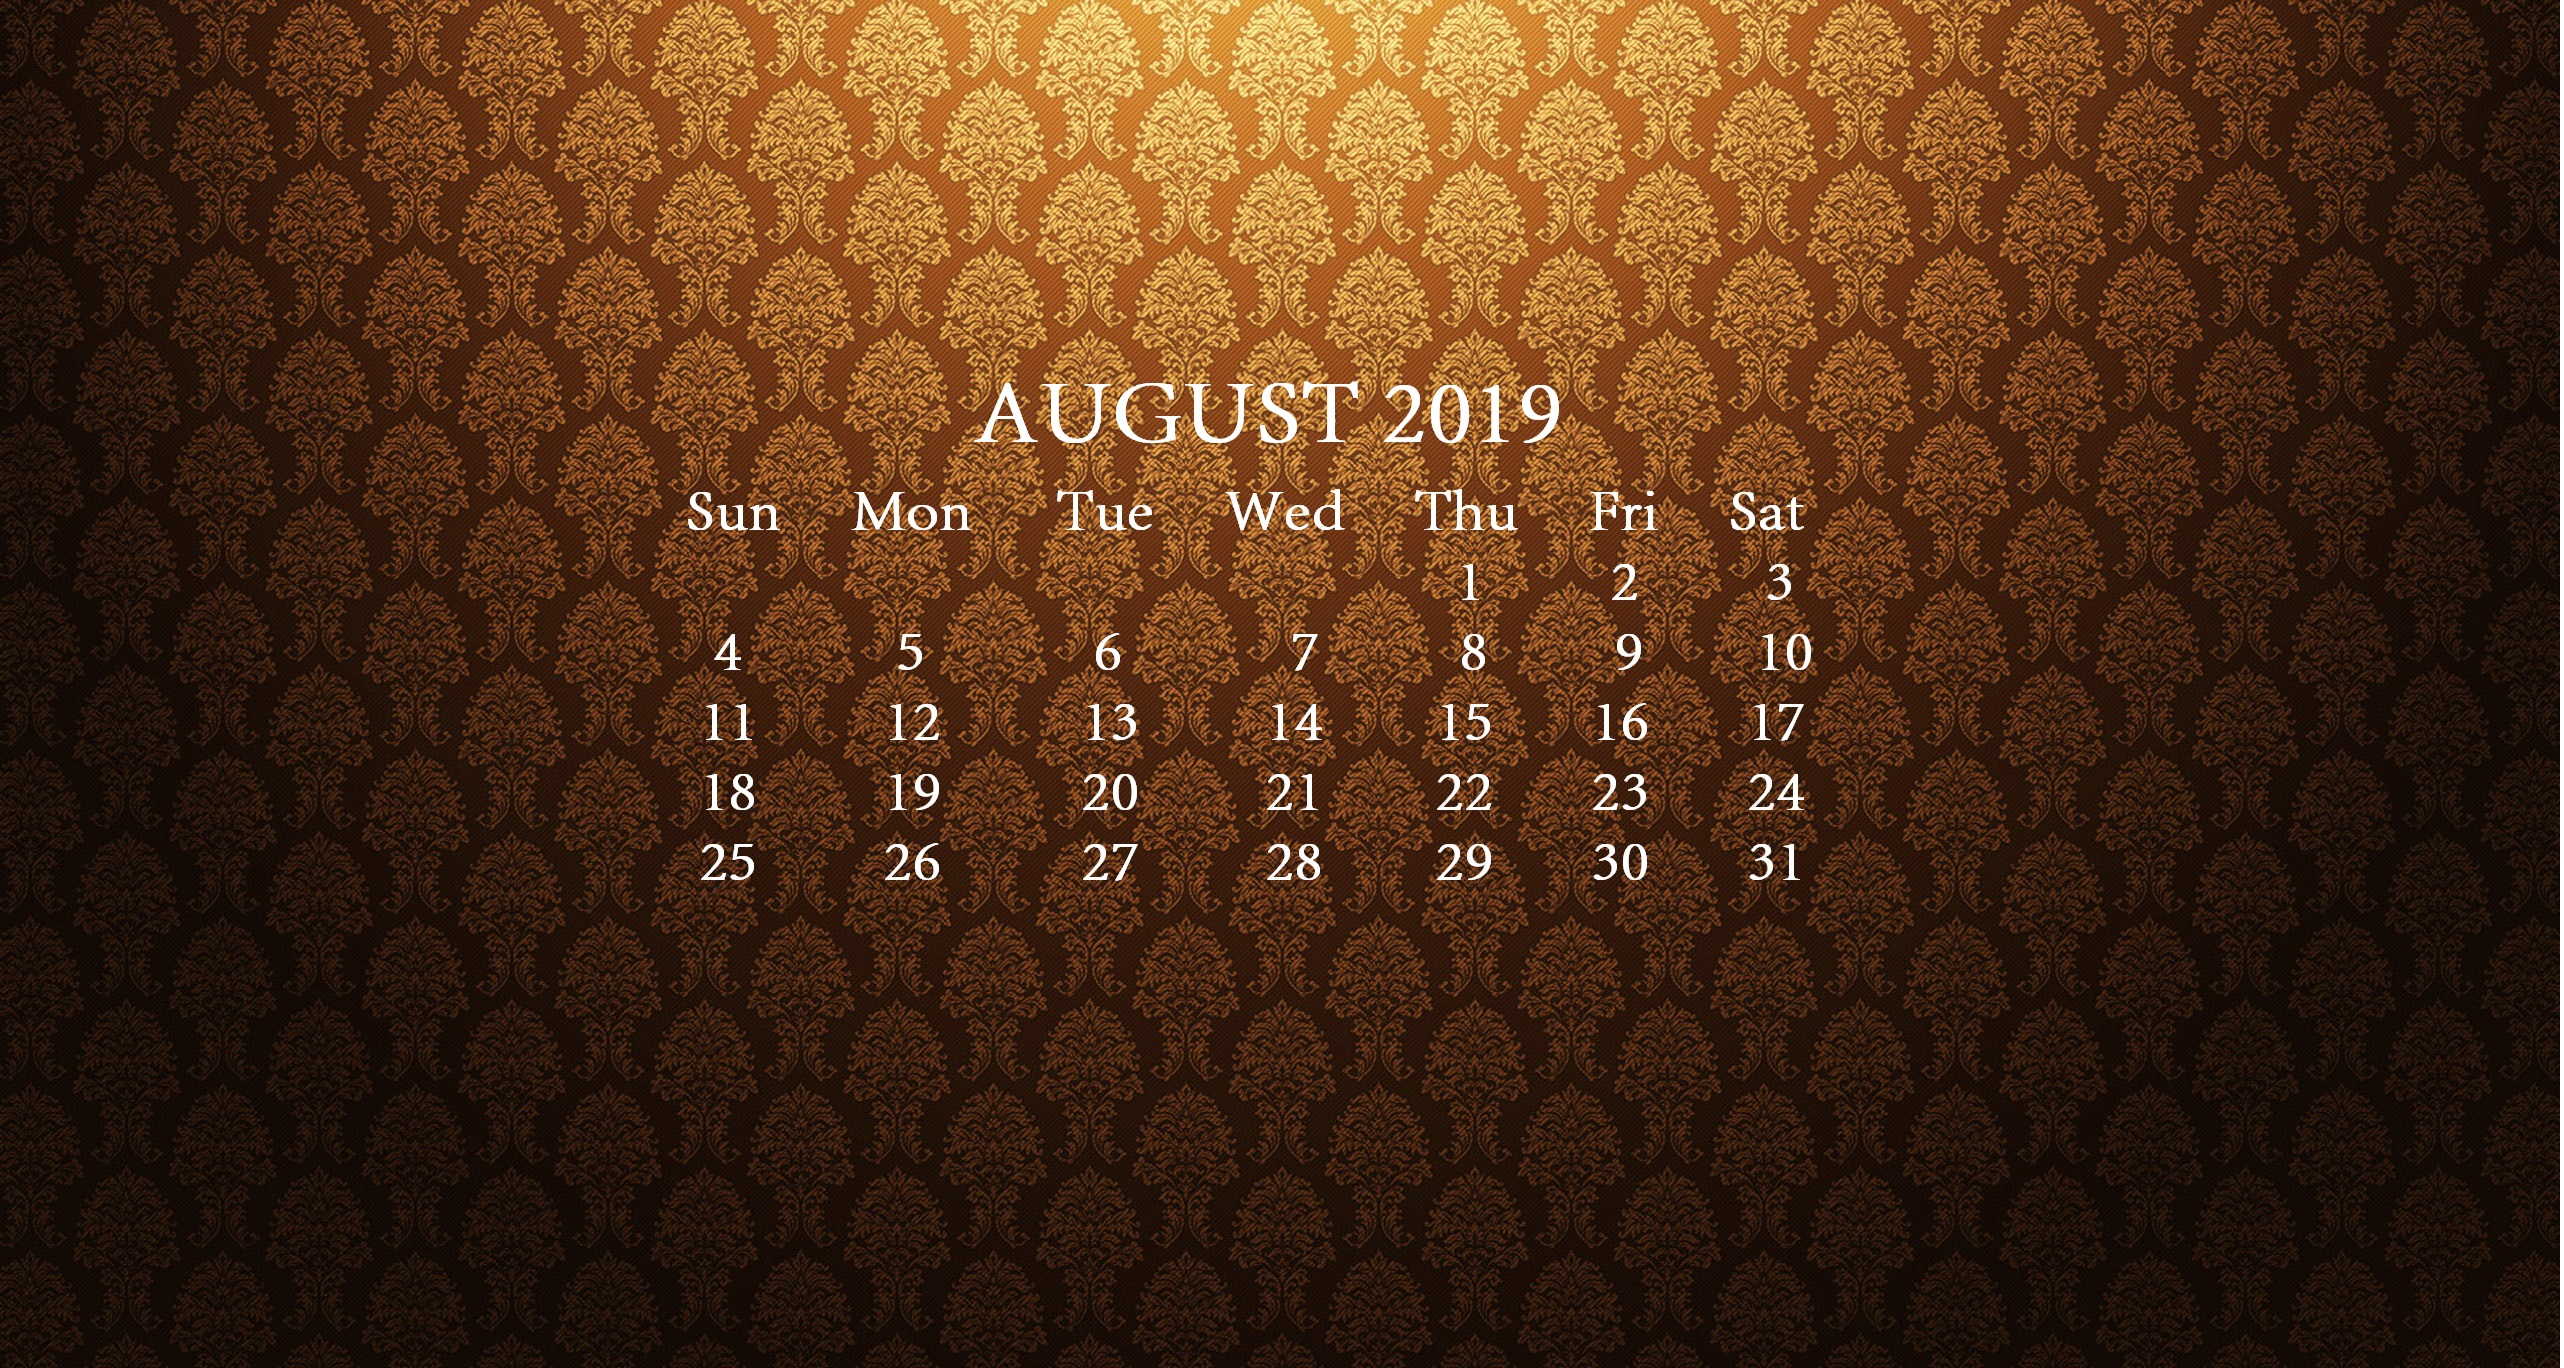 August 2019 HD Desktop Calendar Wallpaper